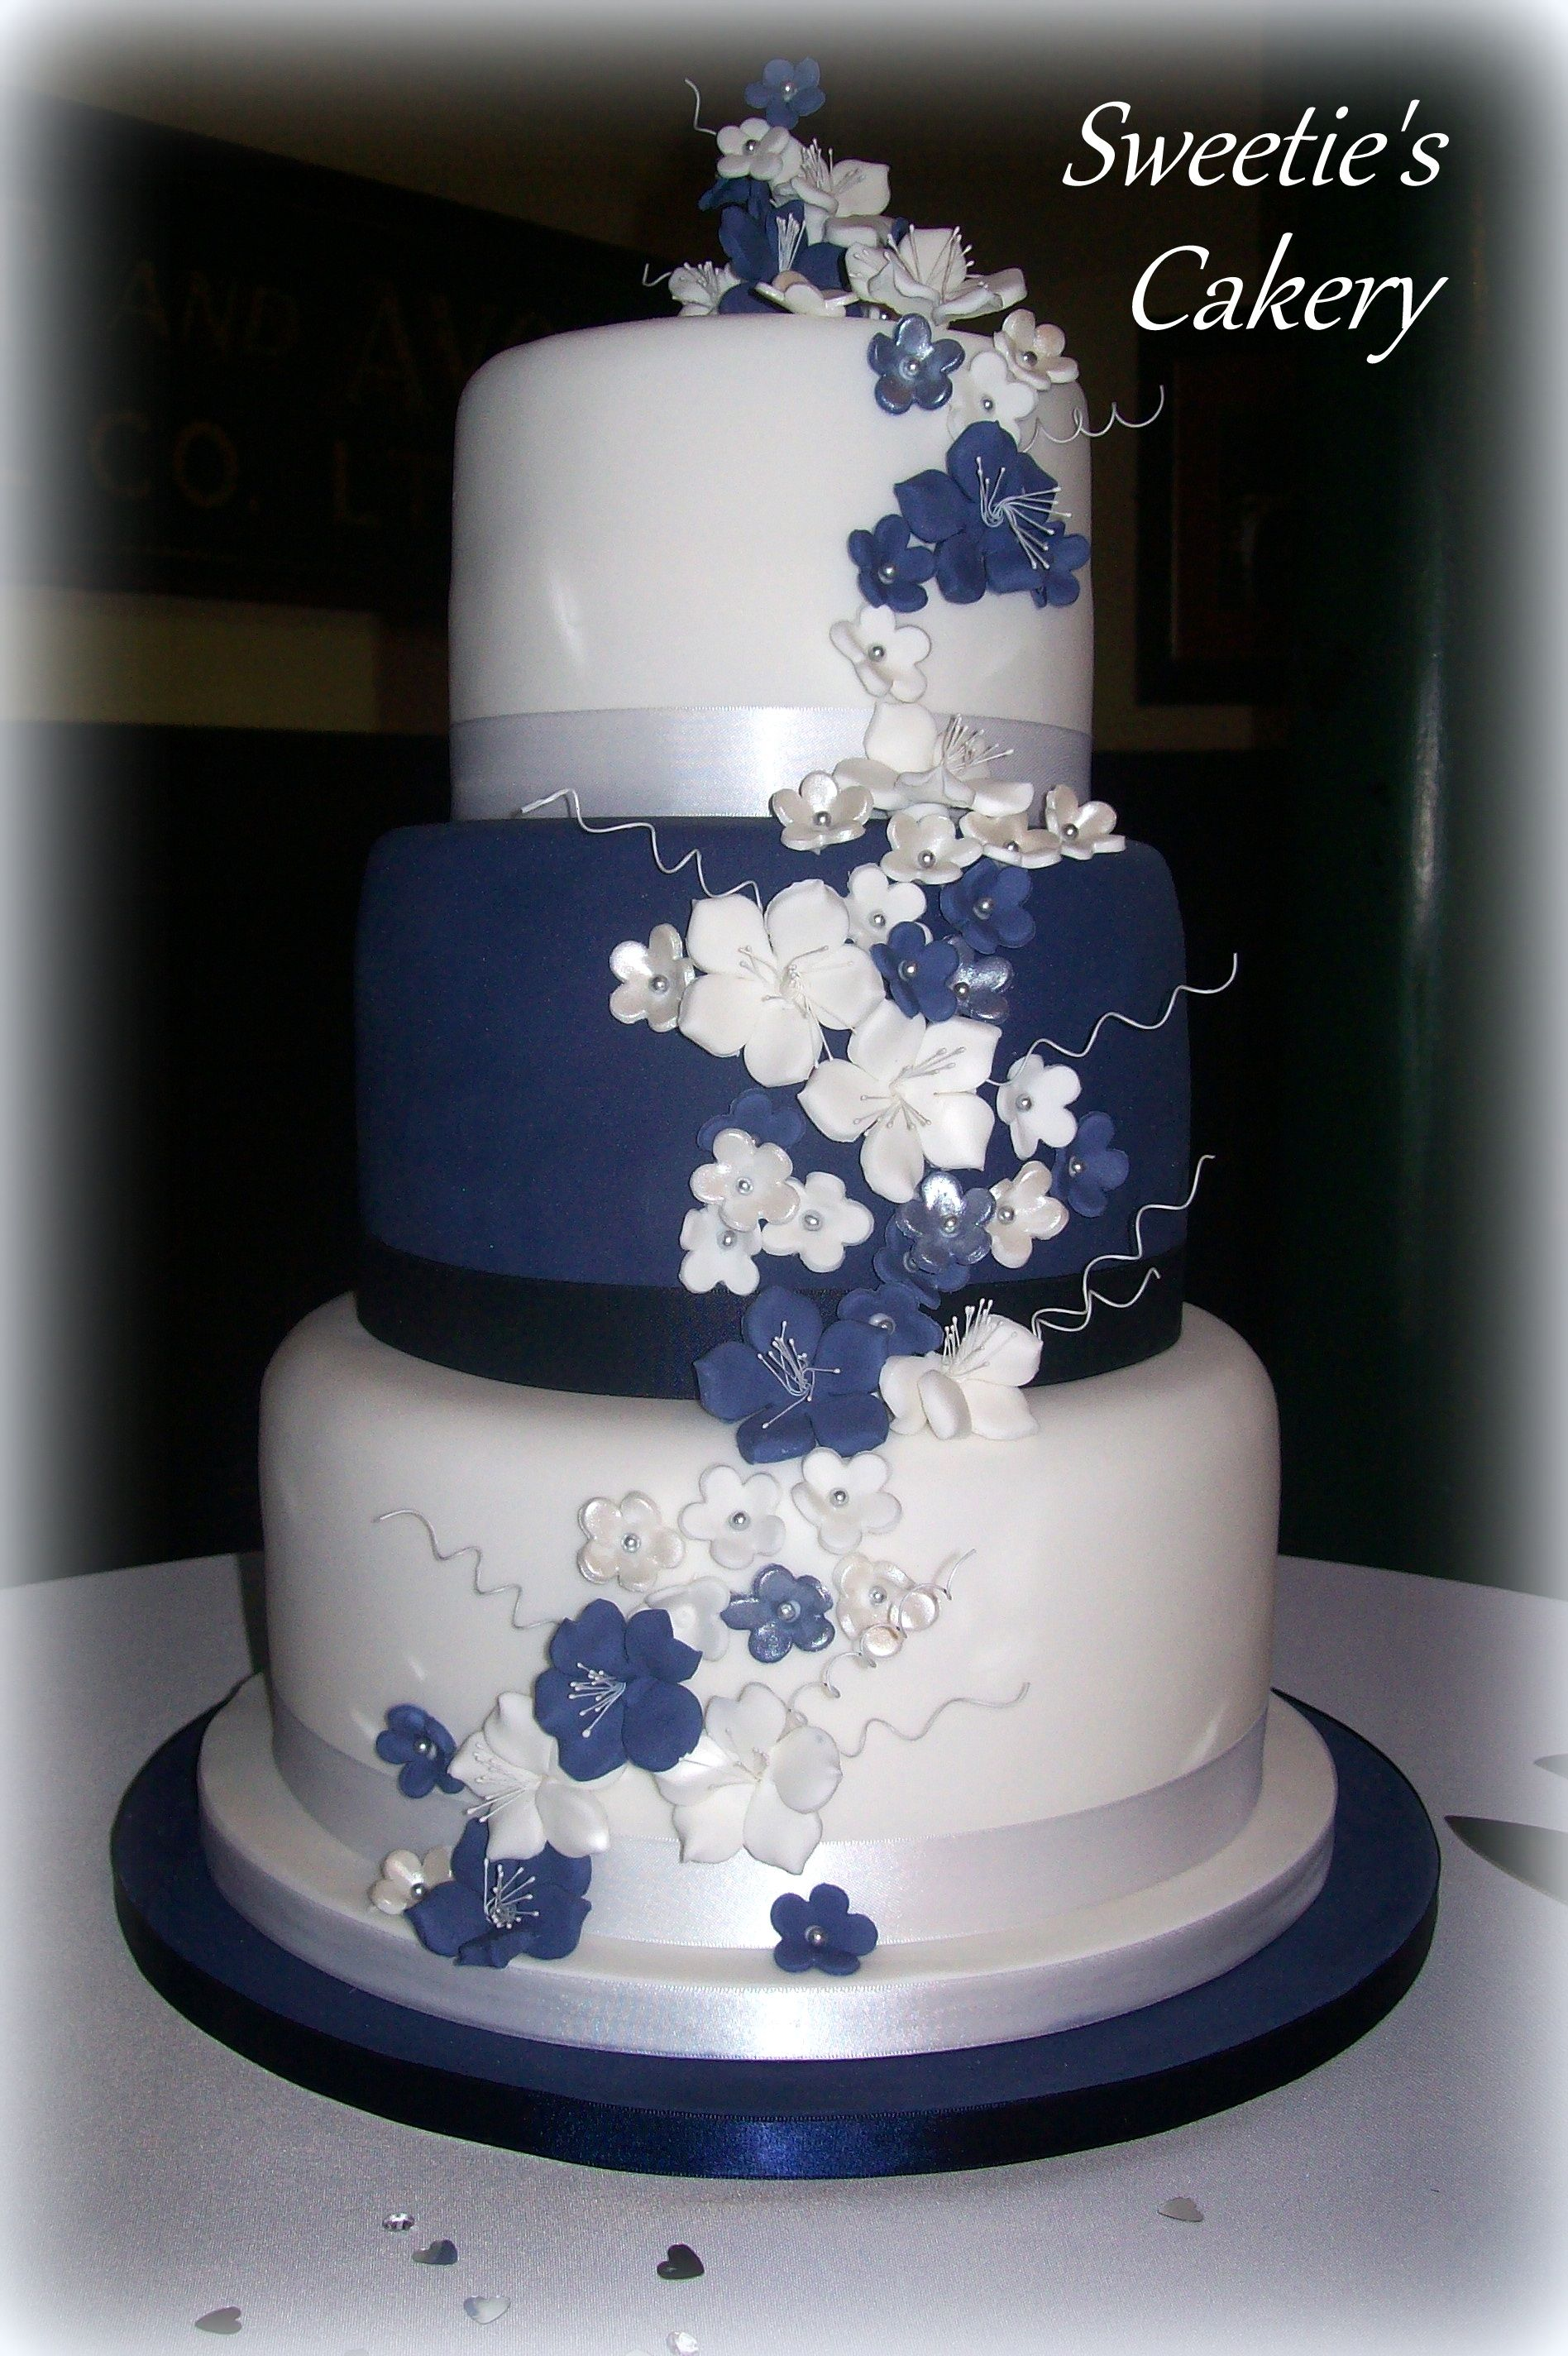 Http Facebook Com Sweetiescakery Navy Blue White And Silver Wedding Cake With Flowers Navy Blue Wedding Cakes Wedding Cake Navy Wedding Cakes Blue